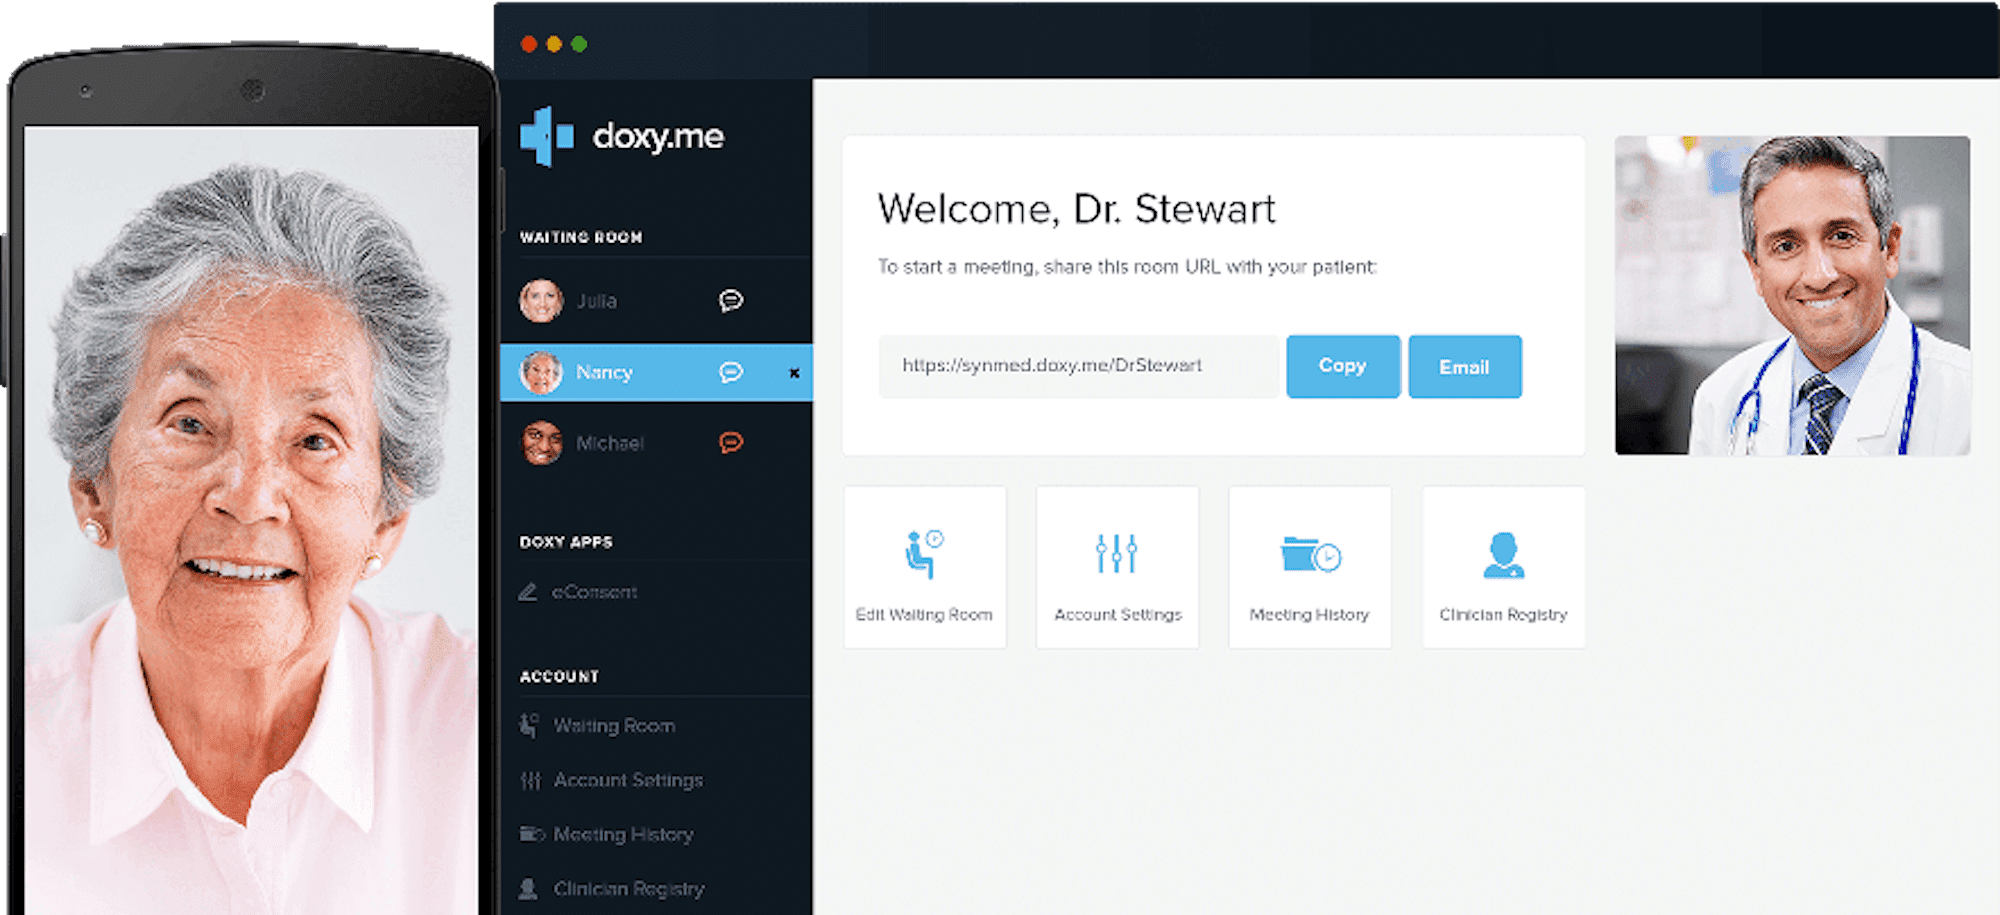 doxyme interface